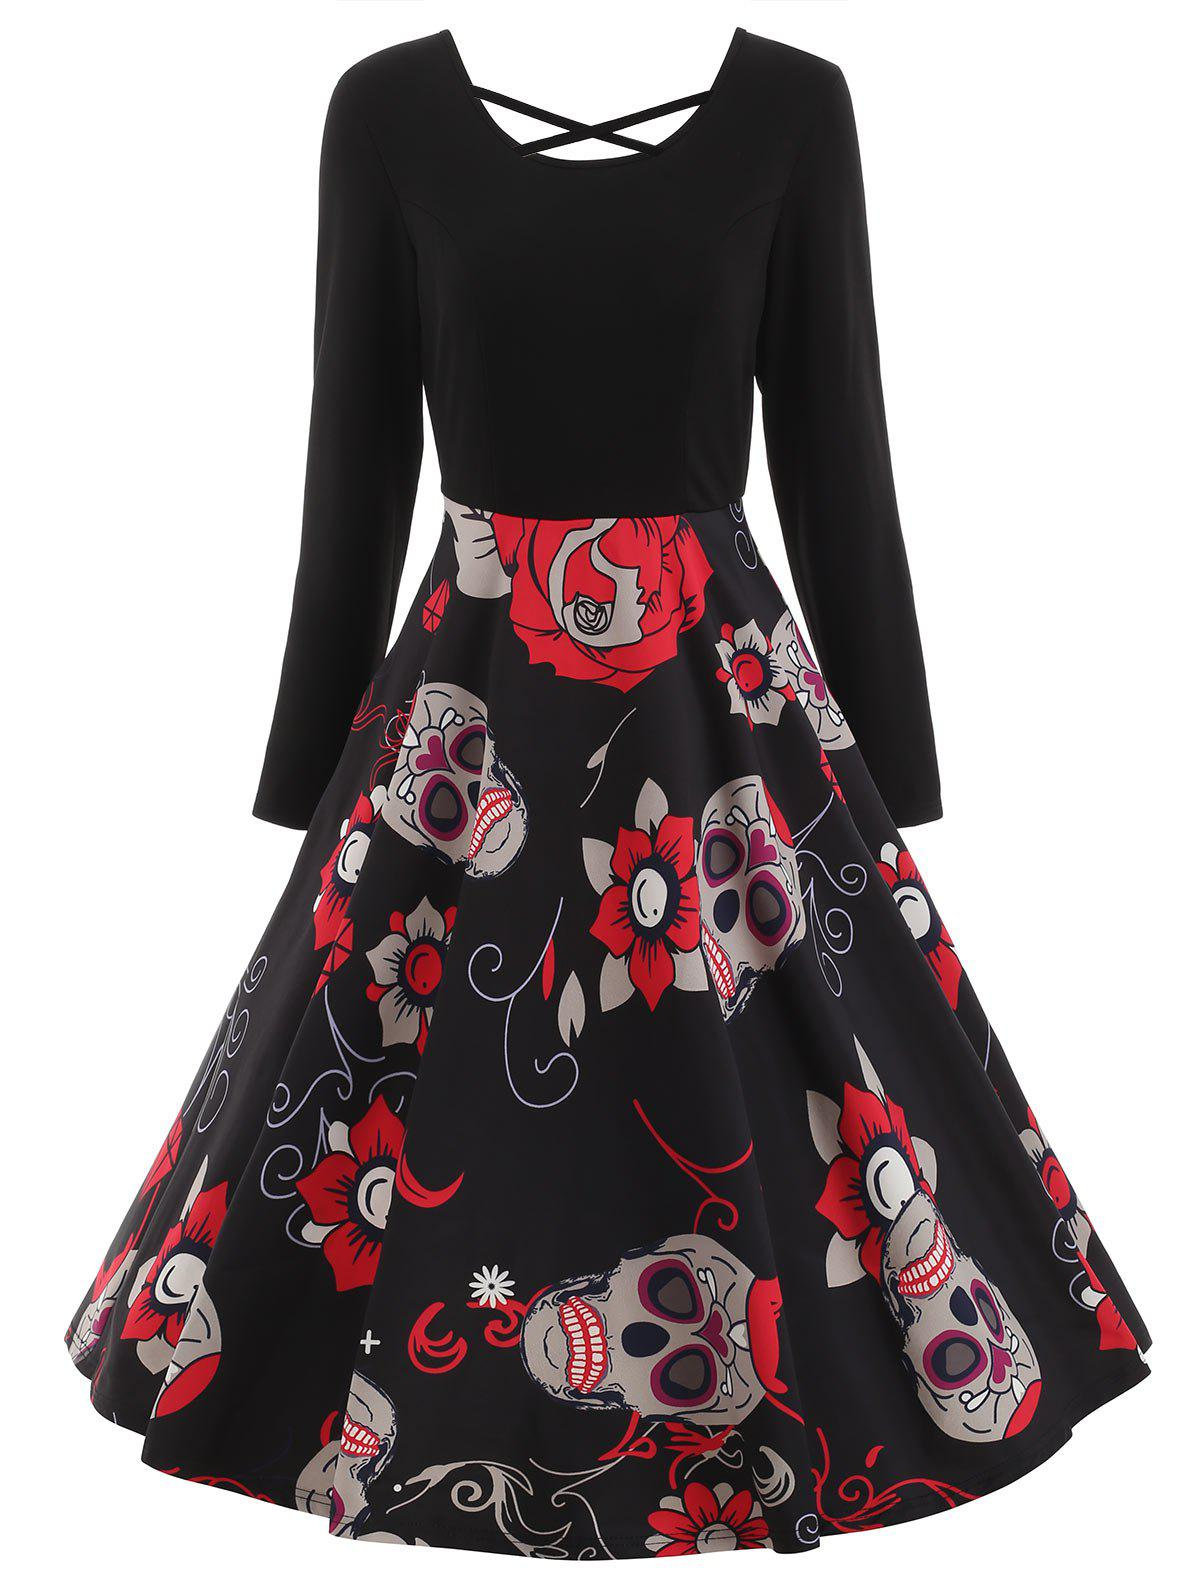 3b13ace996a 47% OFF  Long Sleeve Sugar Skull Print Dress